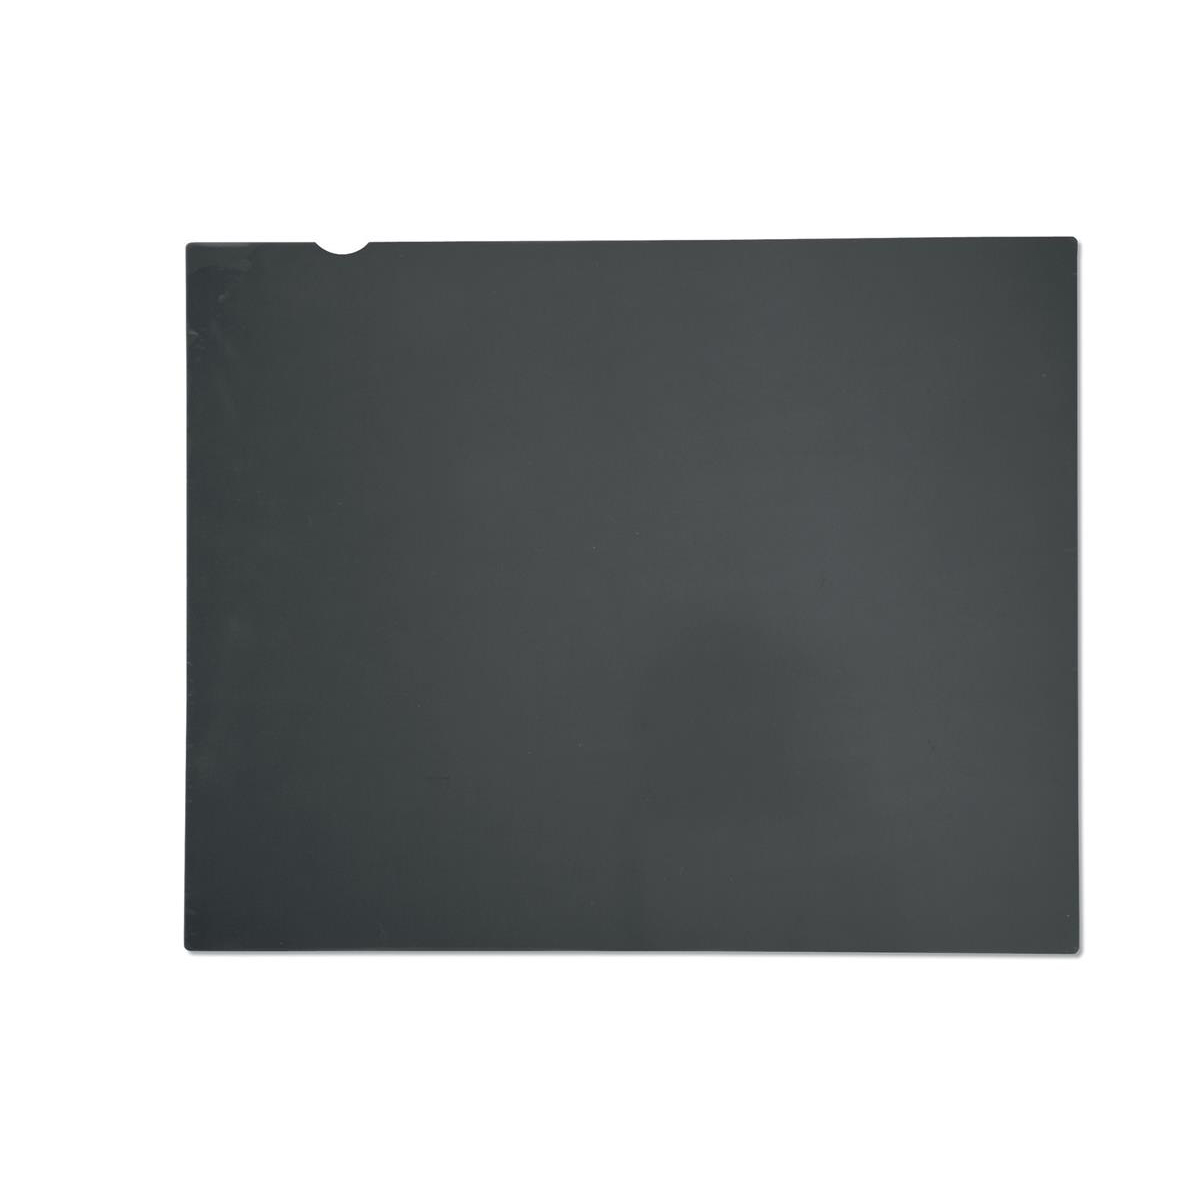 5 Star Office 17inch Privacy Filter for TFT monitors and Laptops Transparent/Black 4:3